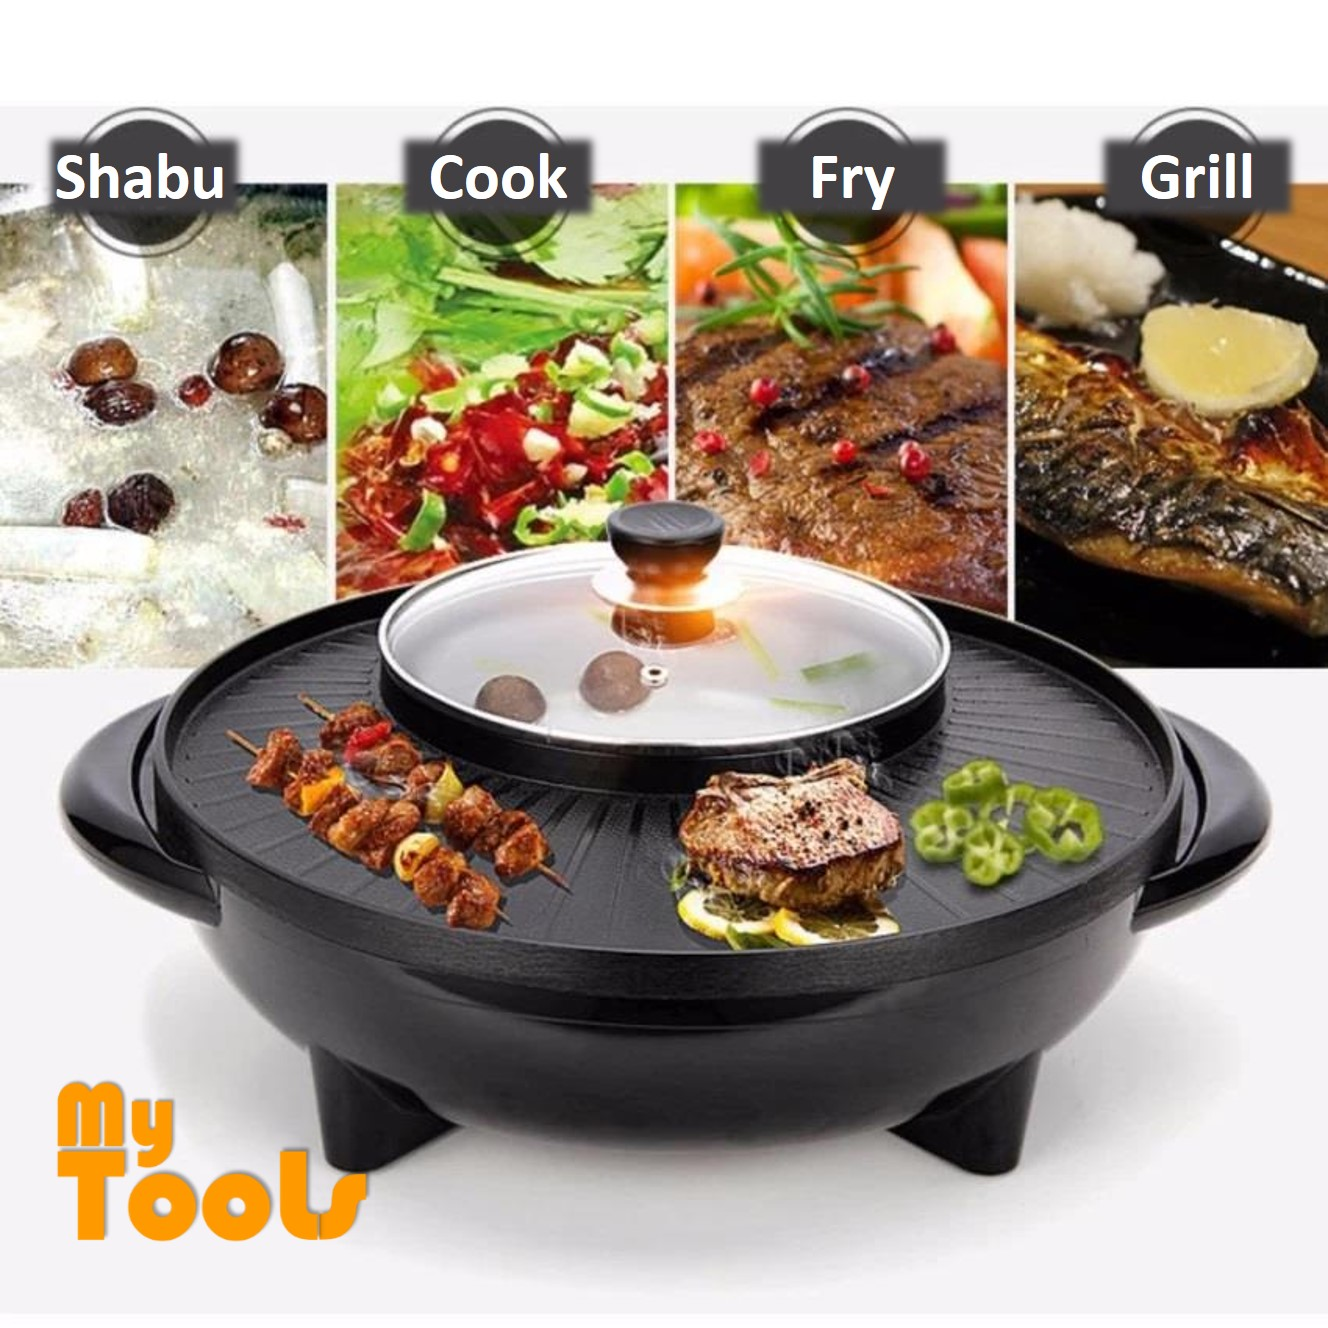 Mytools 2 in 1 Korean BBQ Grill & Steamboat Teppanyaki Hot Pot Shabu Roast Fry